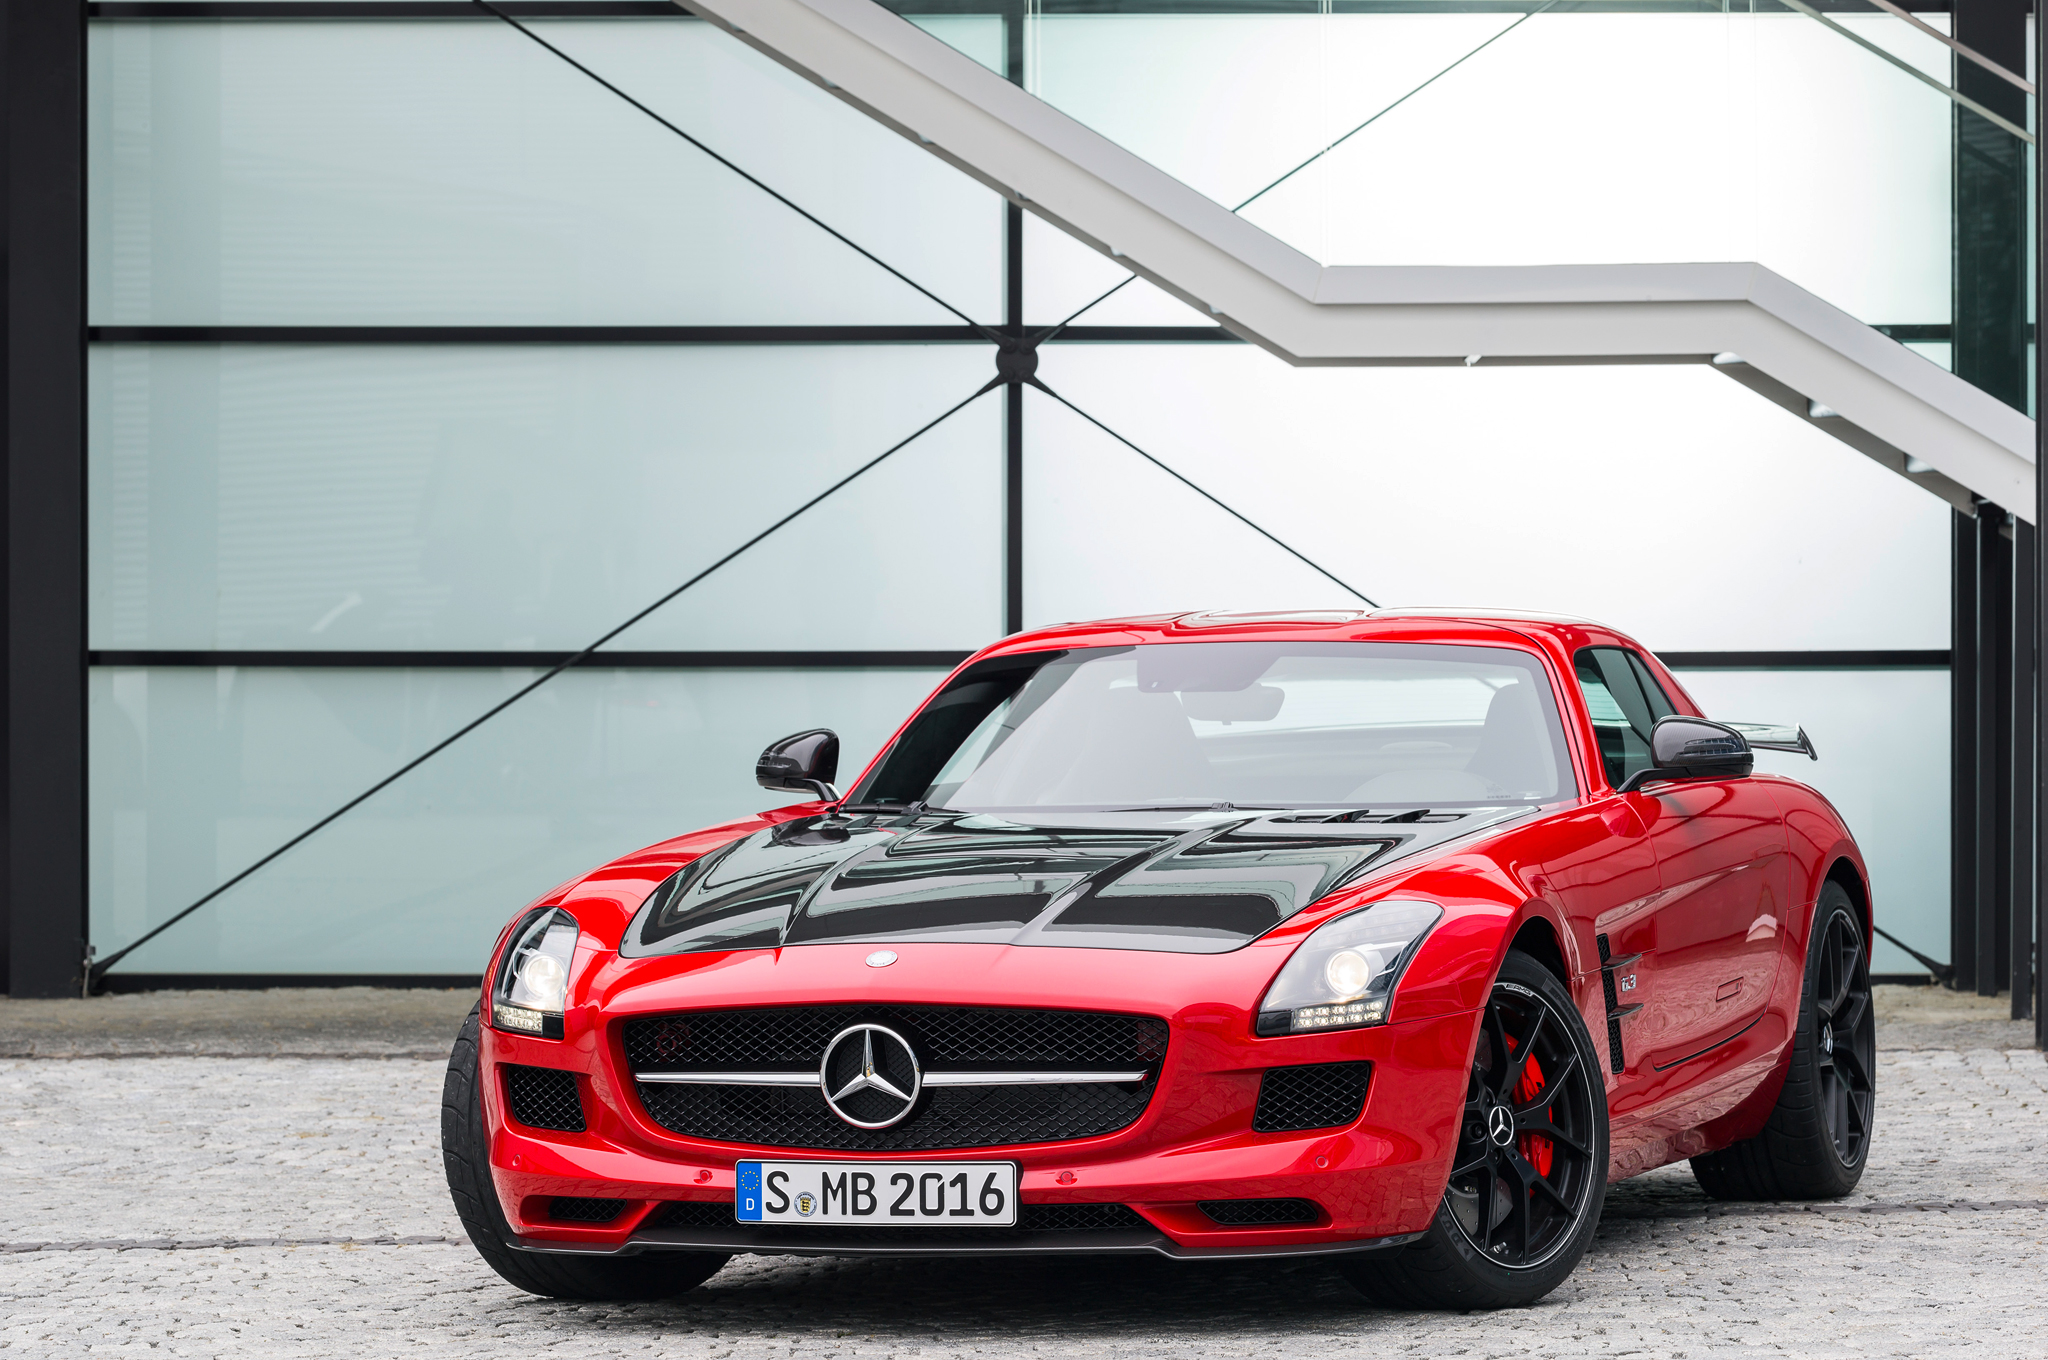 Mercedes-Benz Sls Amg Gt Final Edition #7